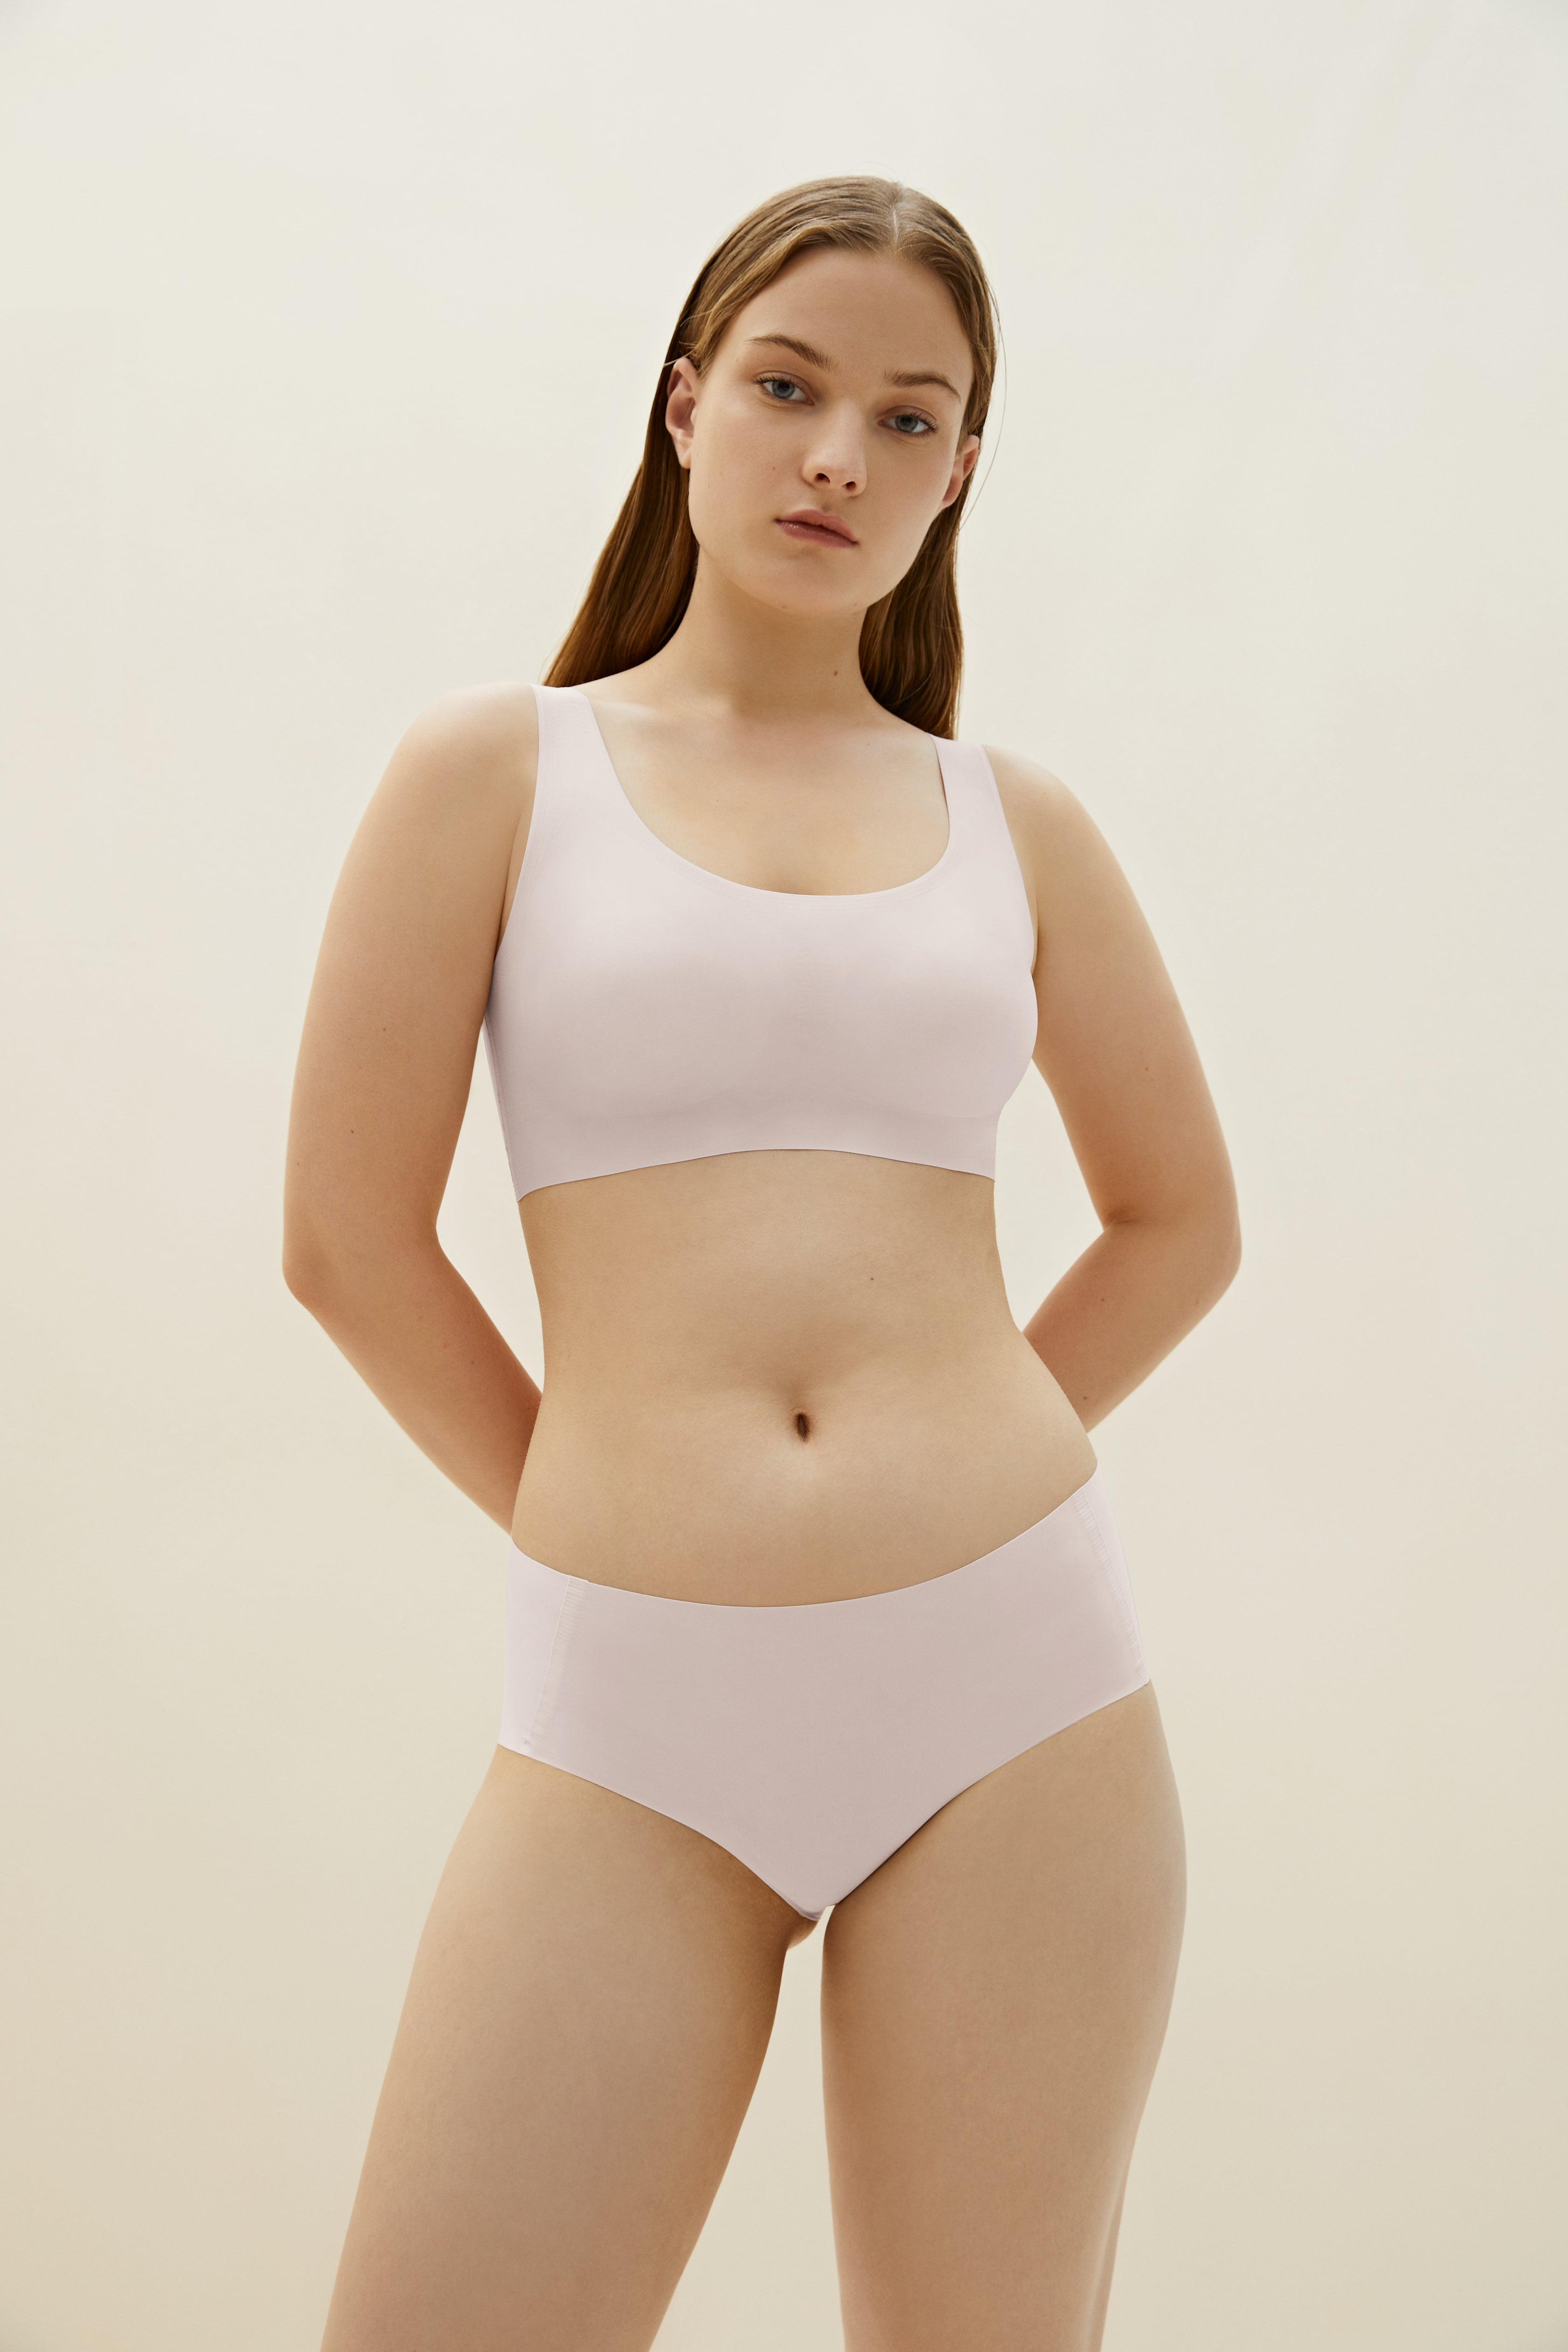 Model wearing NEIWAI's Barely Zero bra and brief set in soft pink.